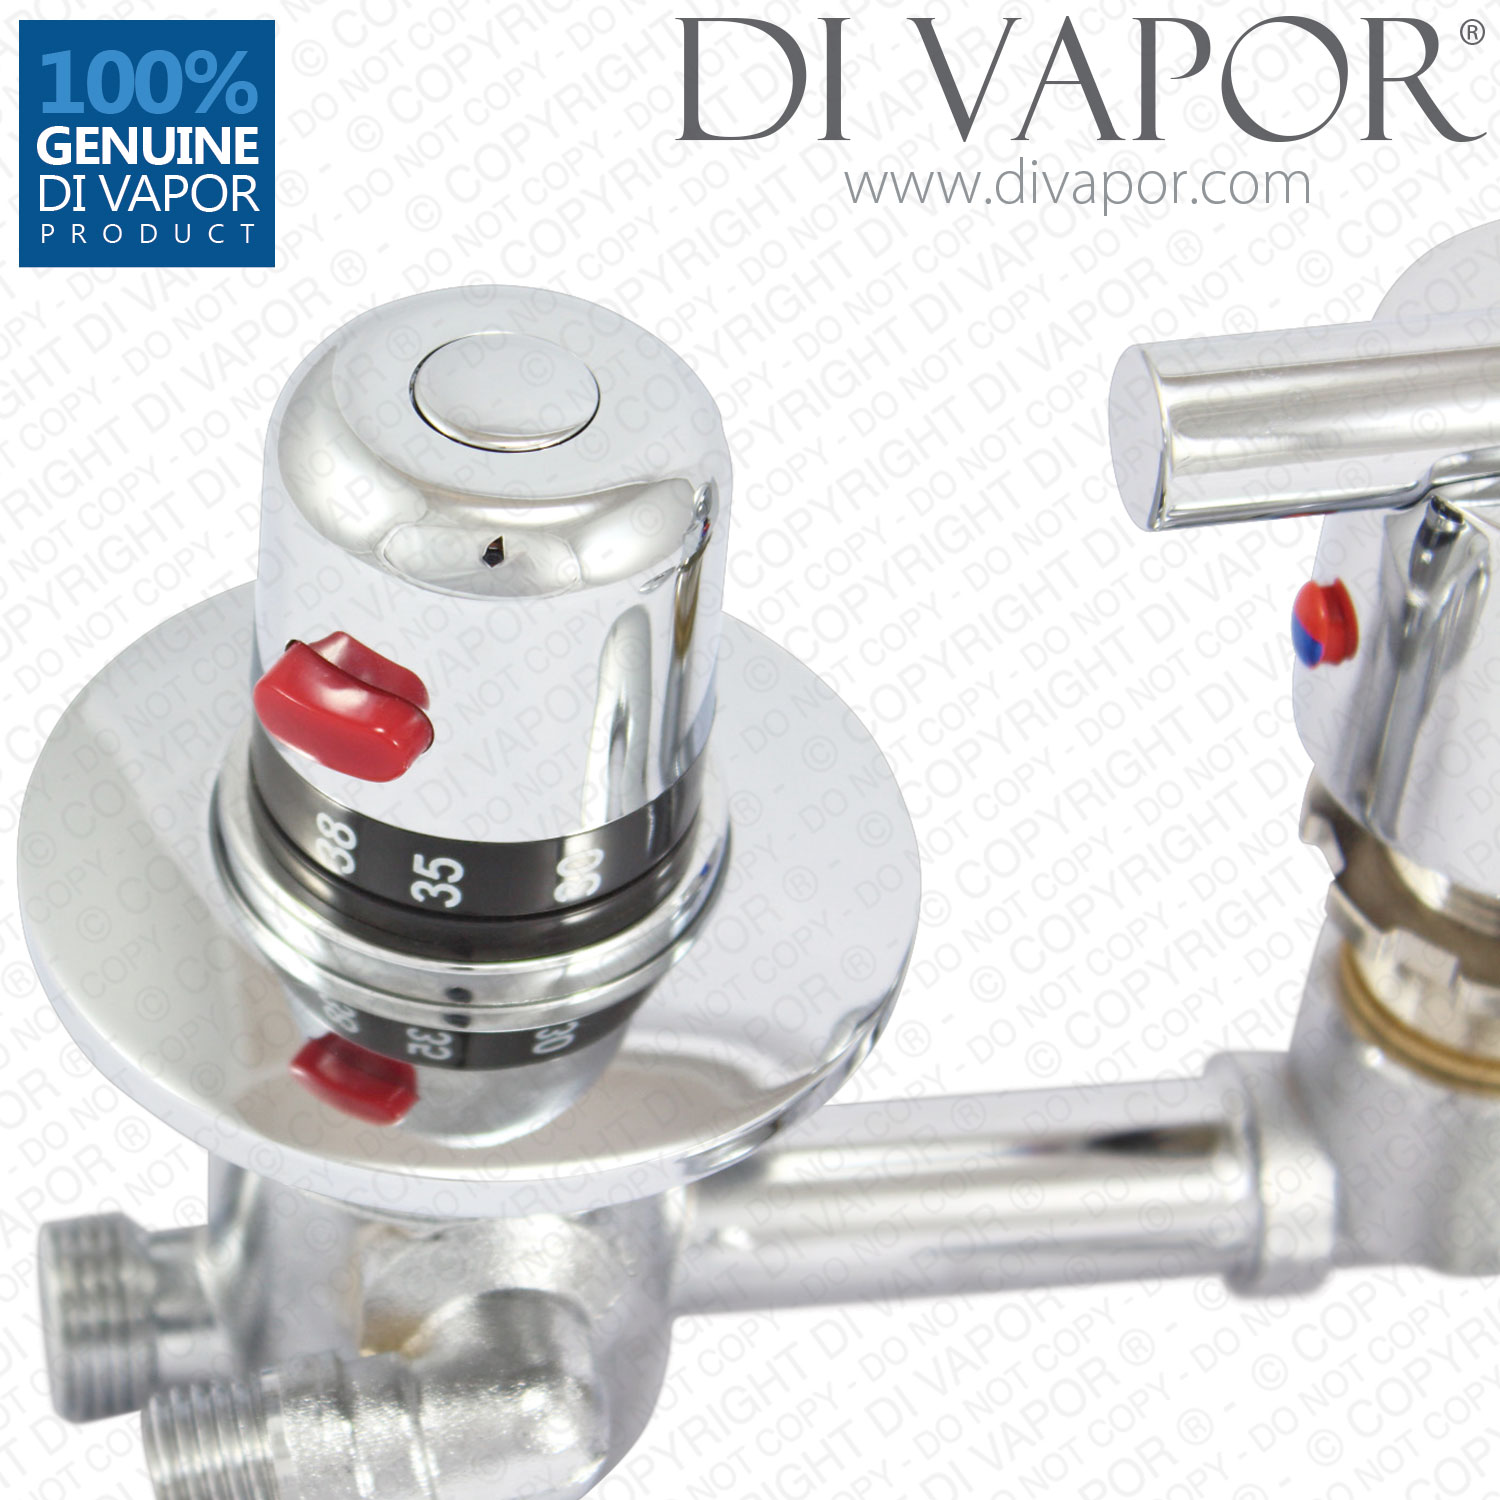 Four 4 Way Shower Diverter Mixer Tap With Thermostatic